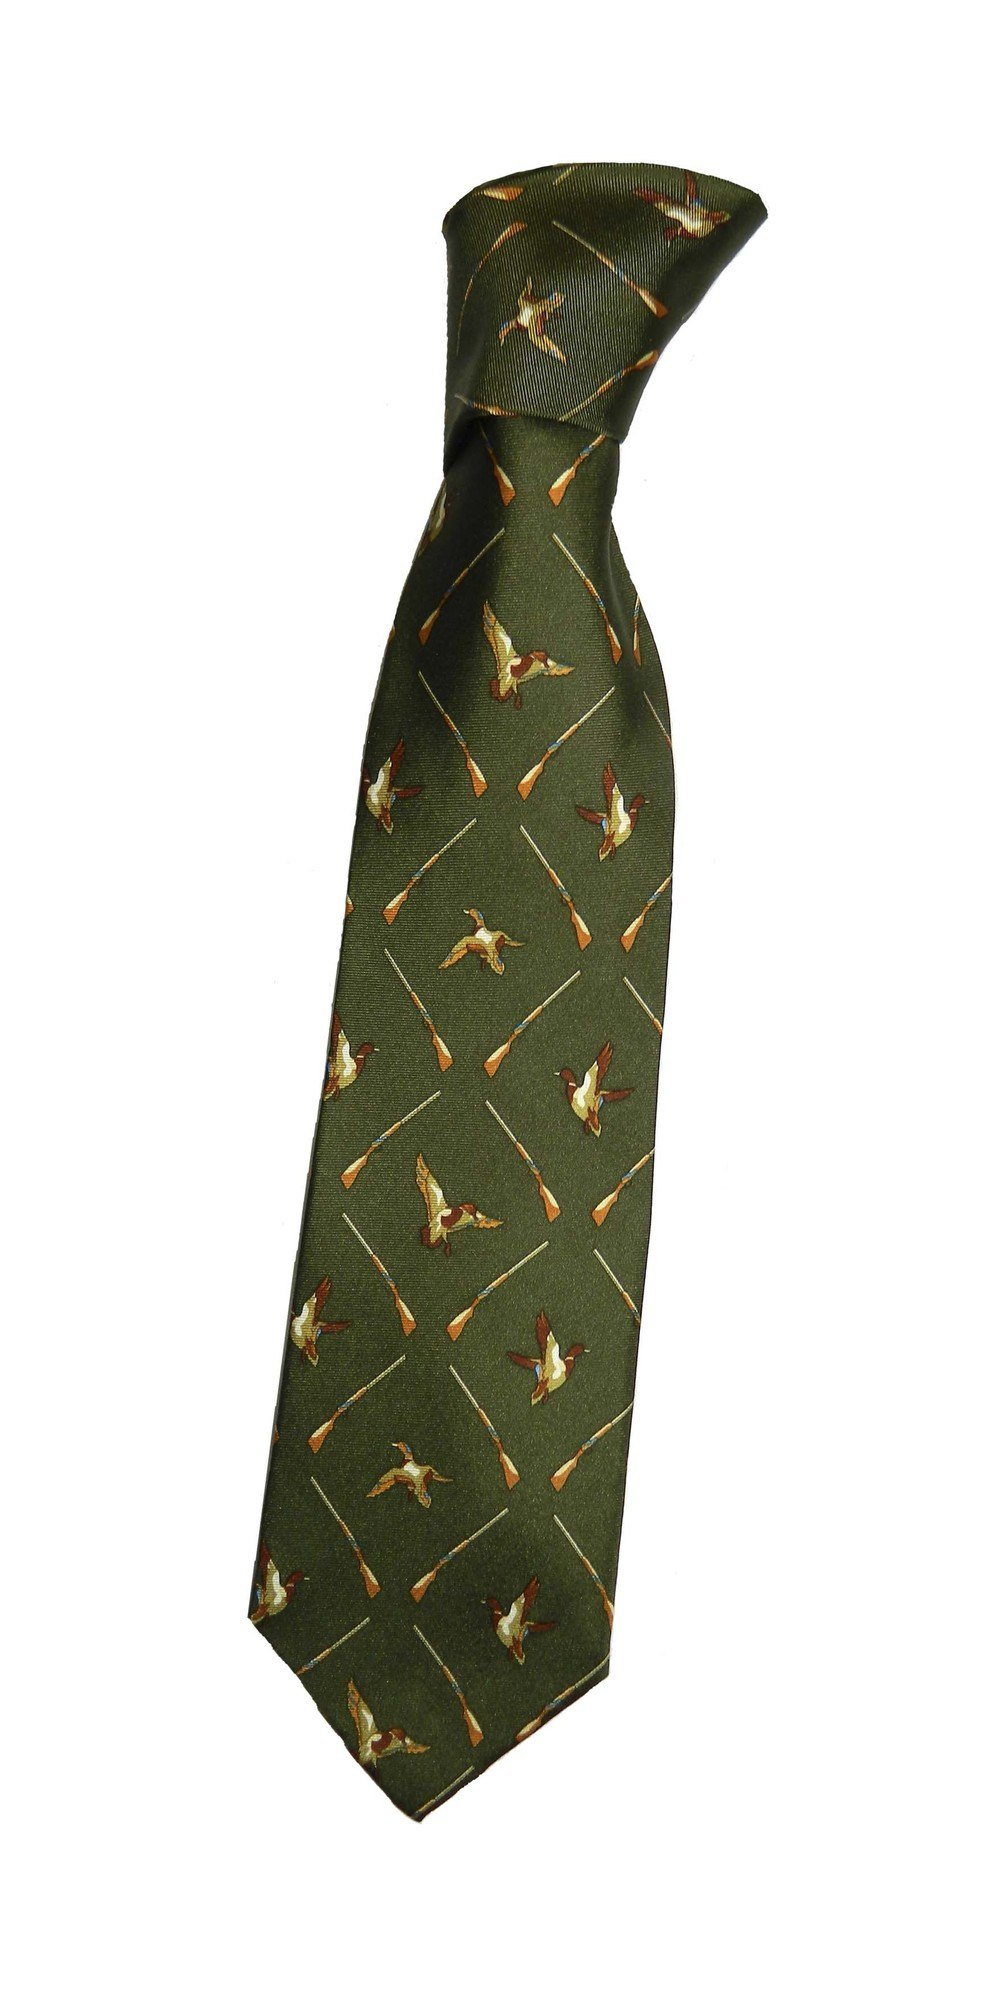 New Product Duck and Gun pattern silk tie